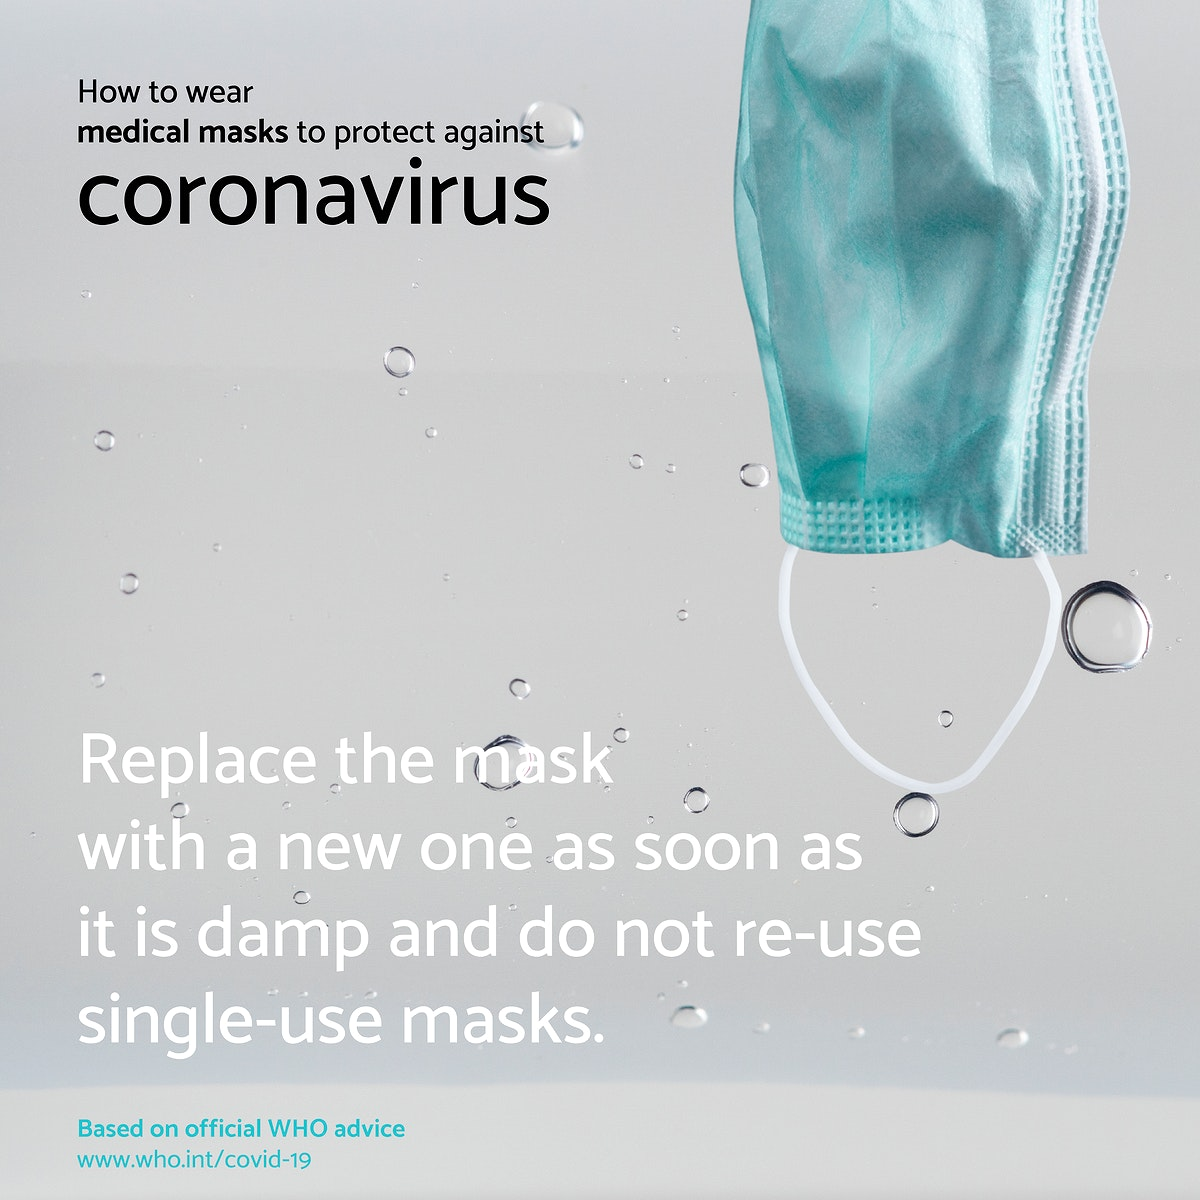 Replace the mask with a new one as soon as it is damp and do not re-use single-use masks due to COVID-19 source WHO social…